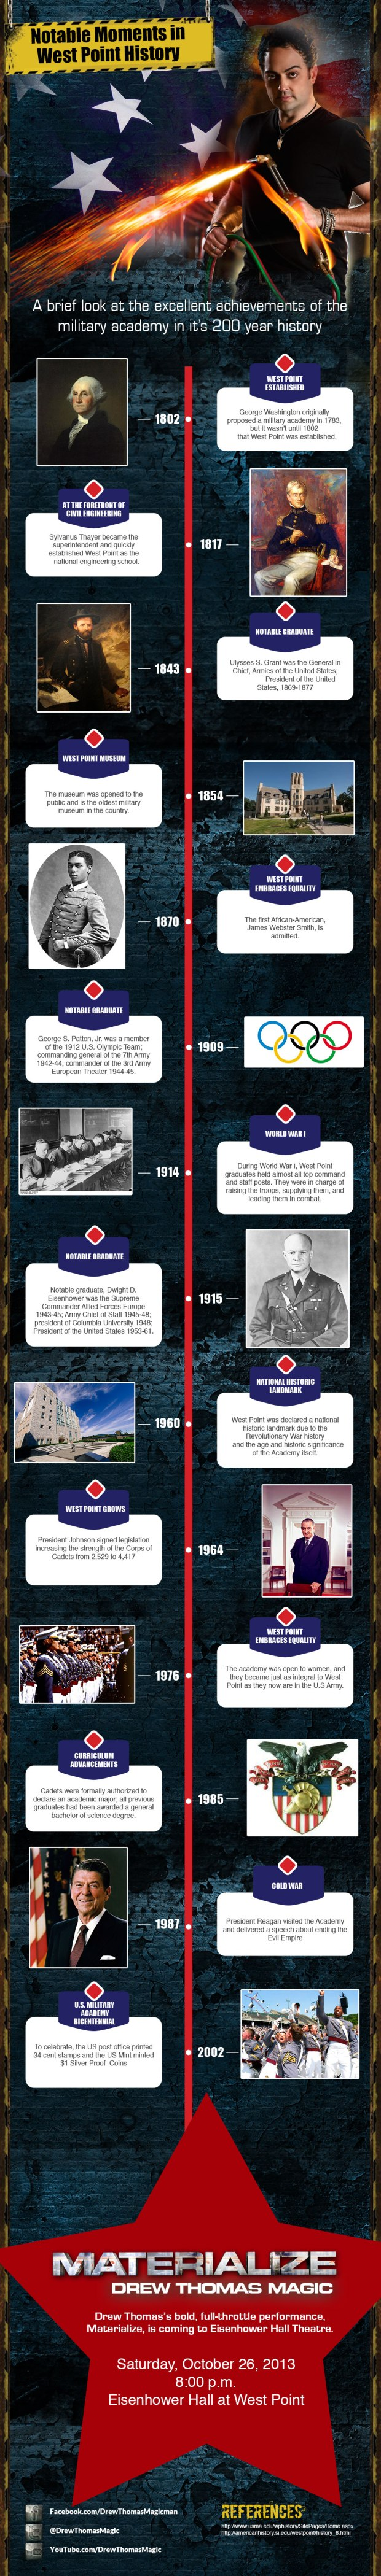 Notable Moments In West Point History